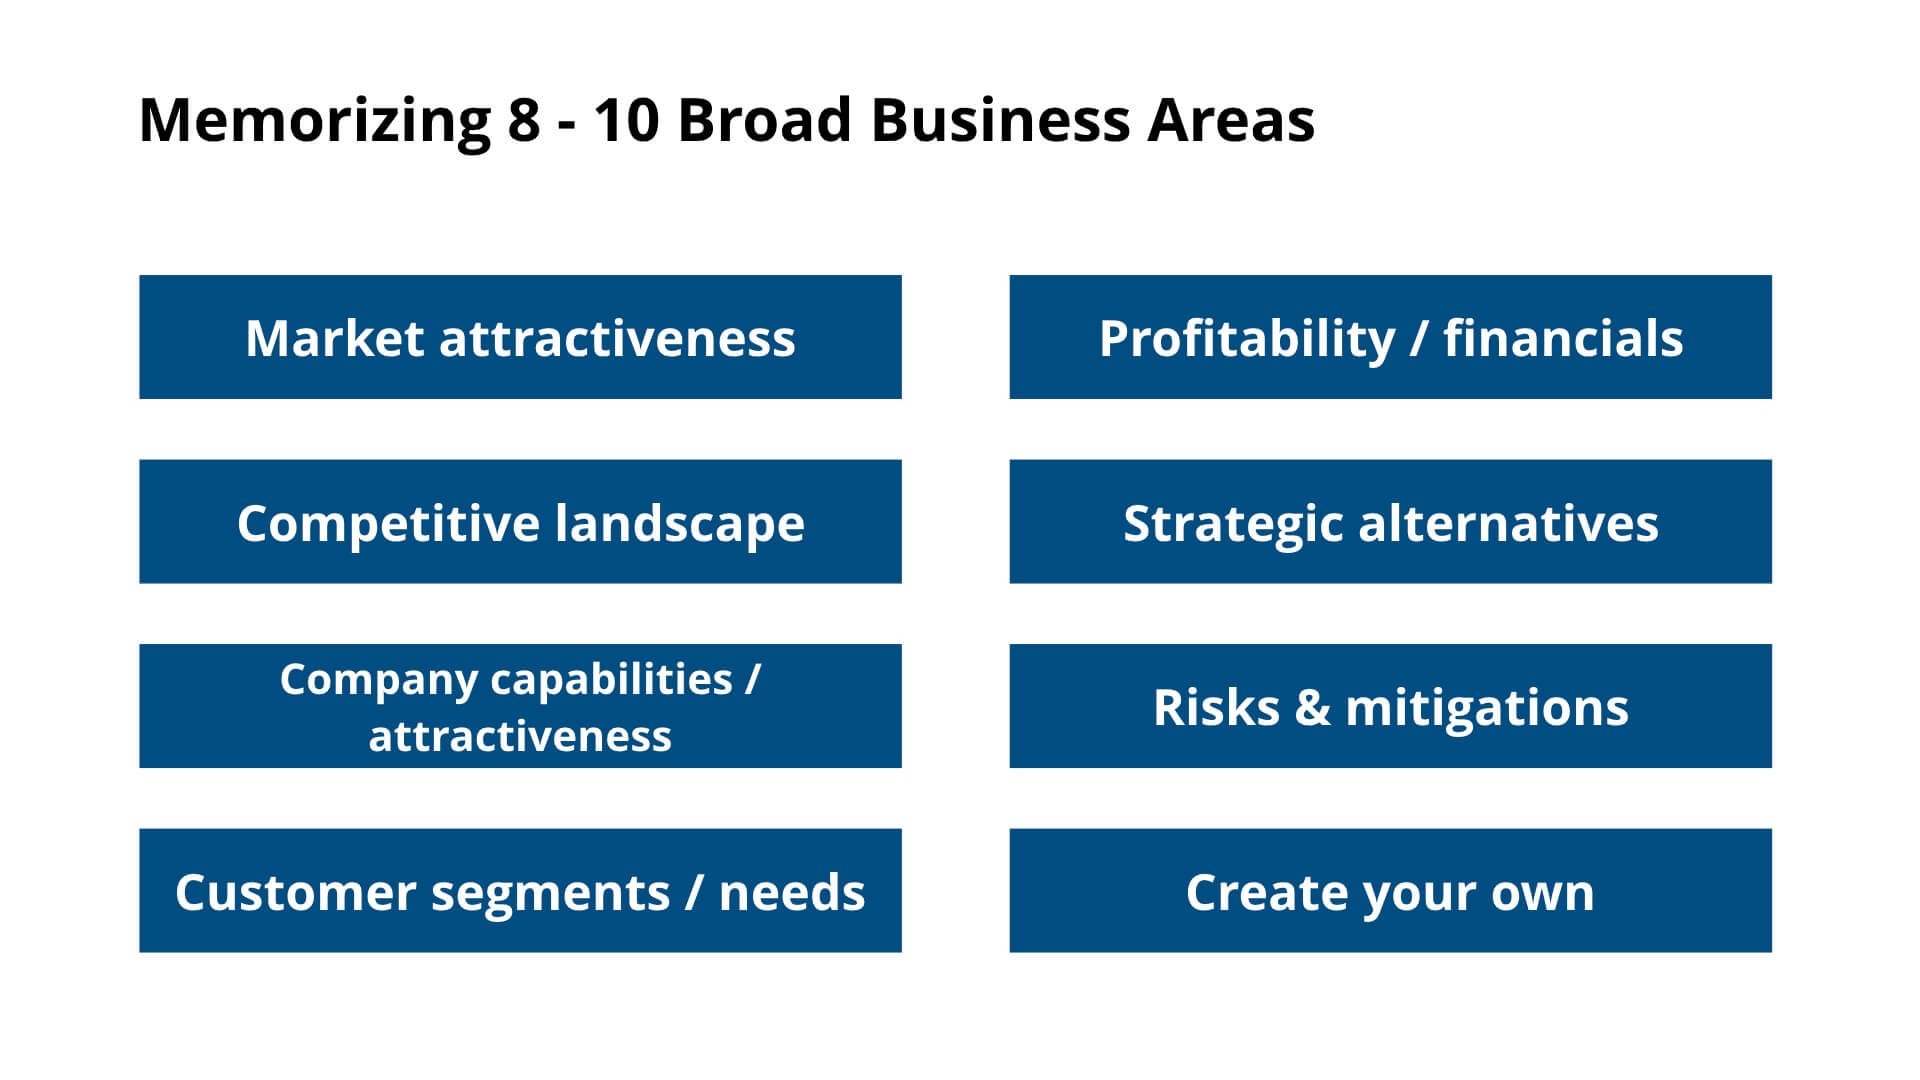 Framework Memorizing 8 - 10 Business Areas